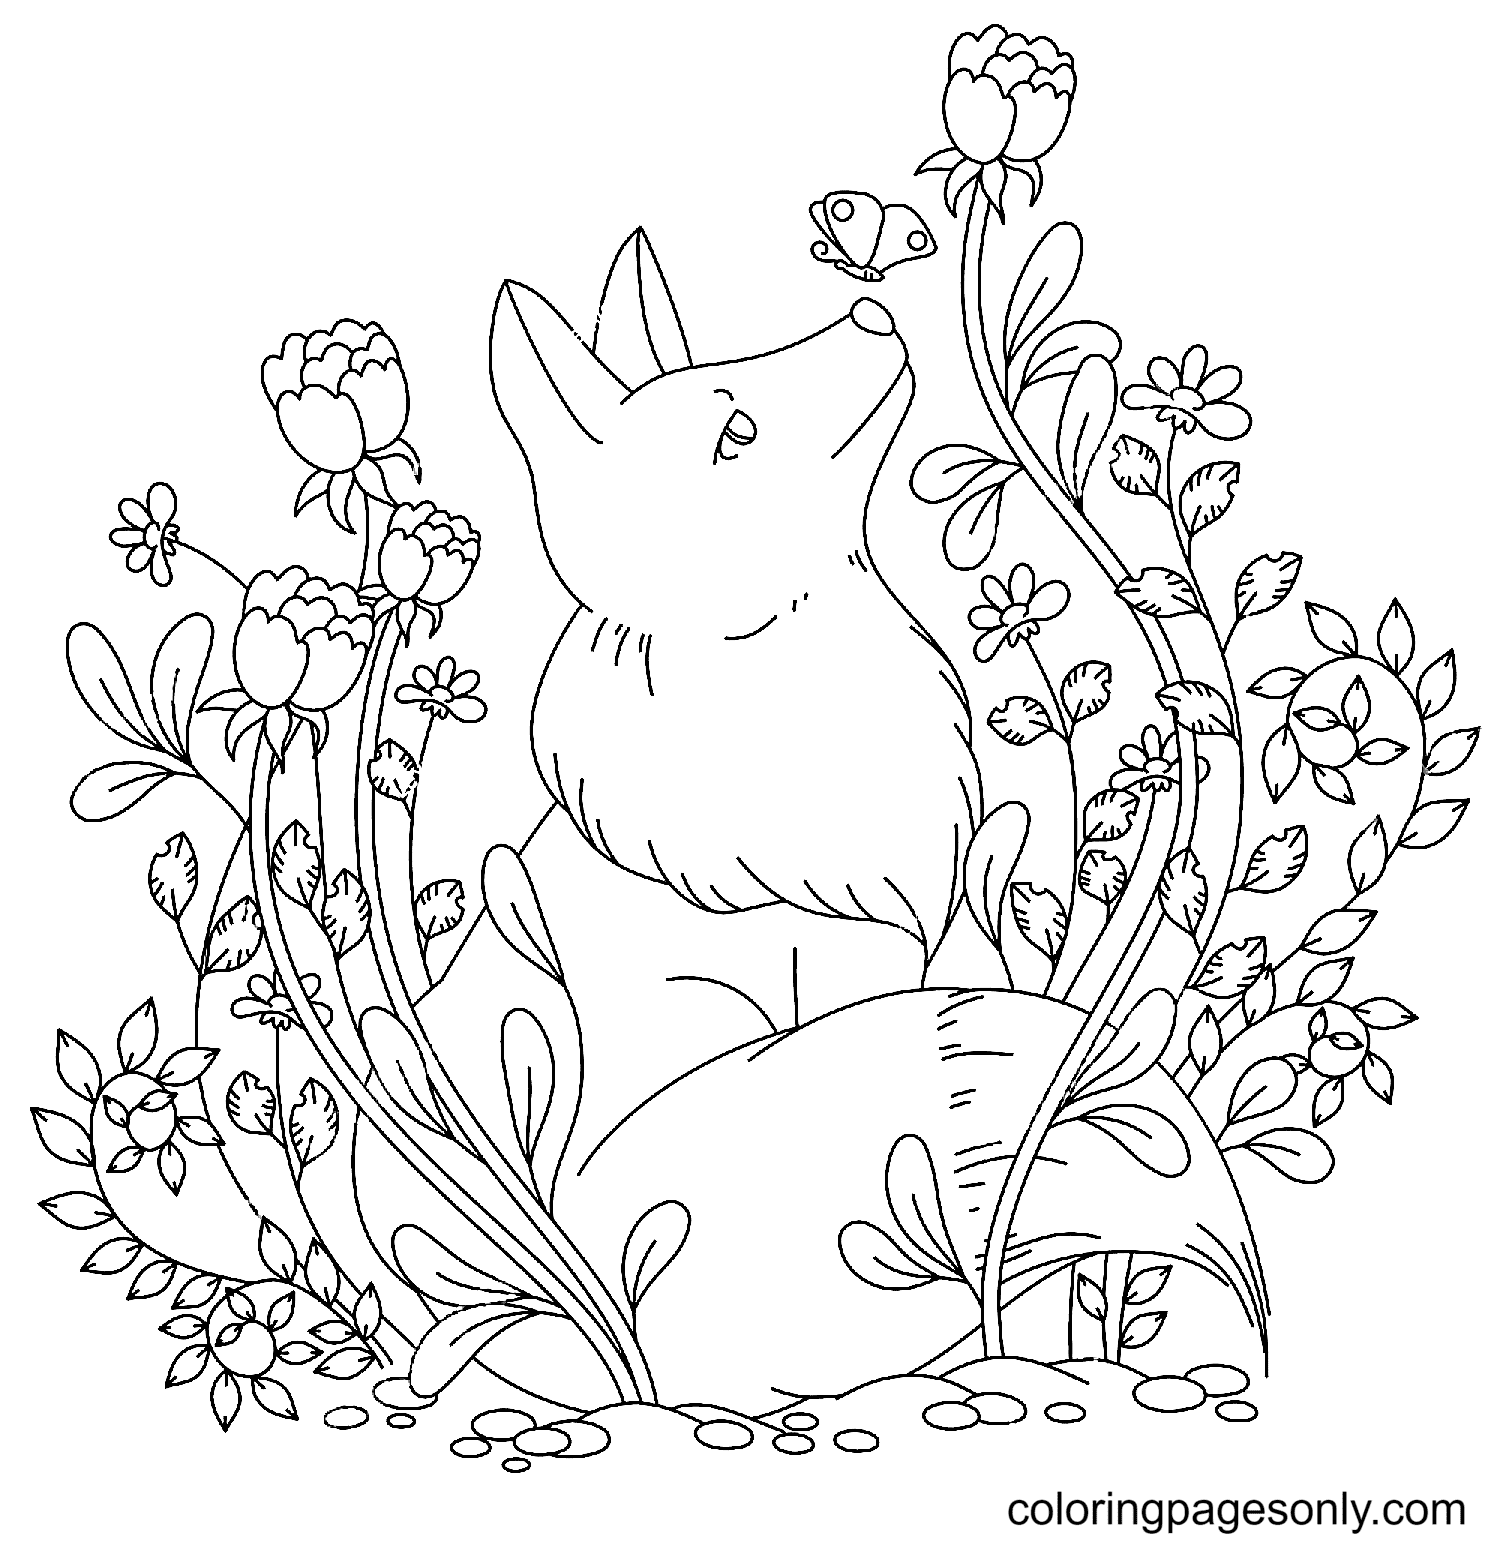 Fox with Butterfly and Flowers Coloring Page